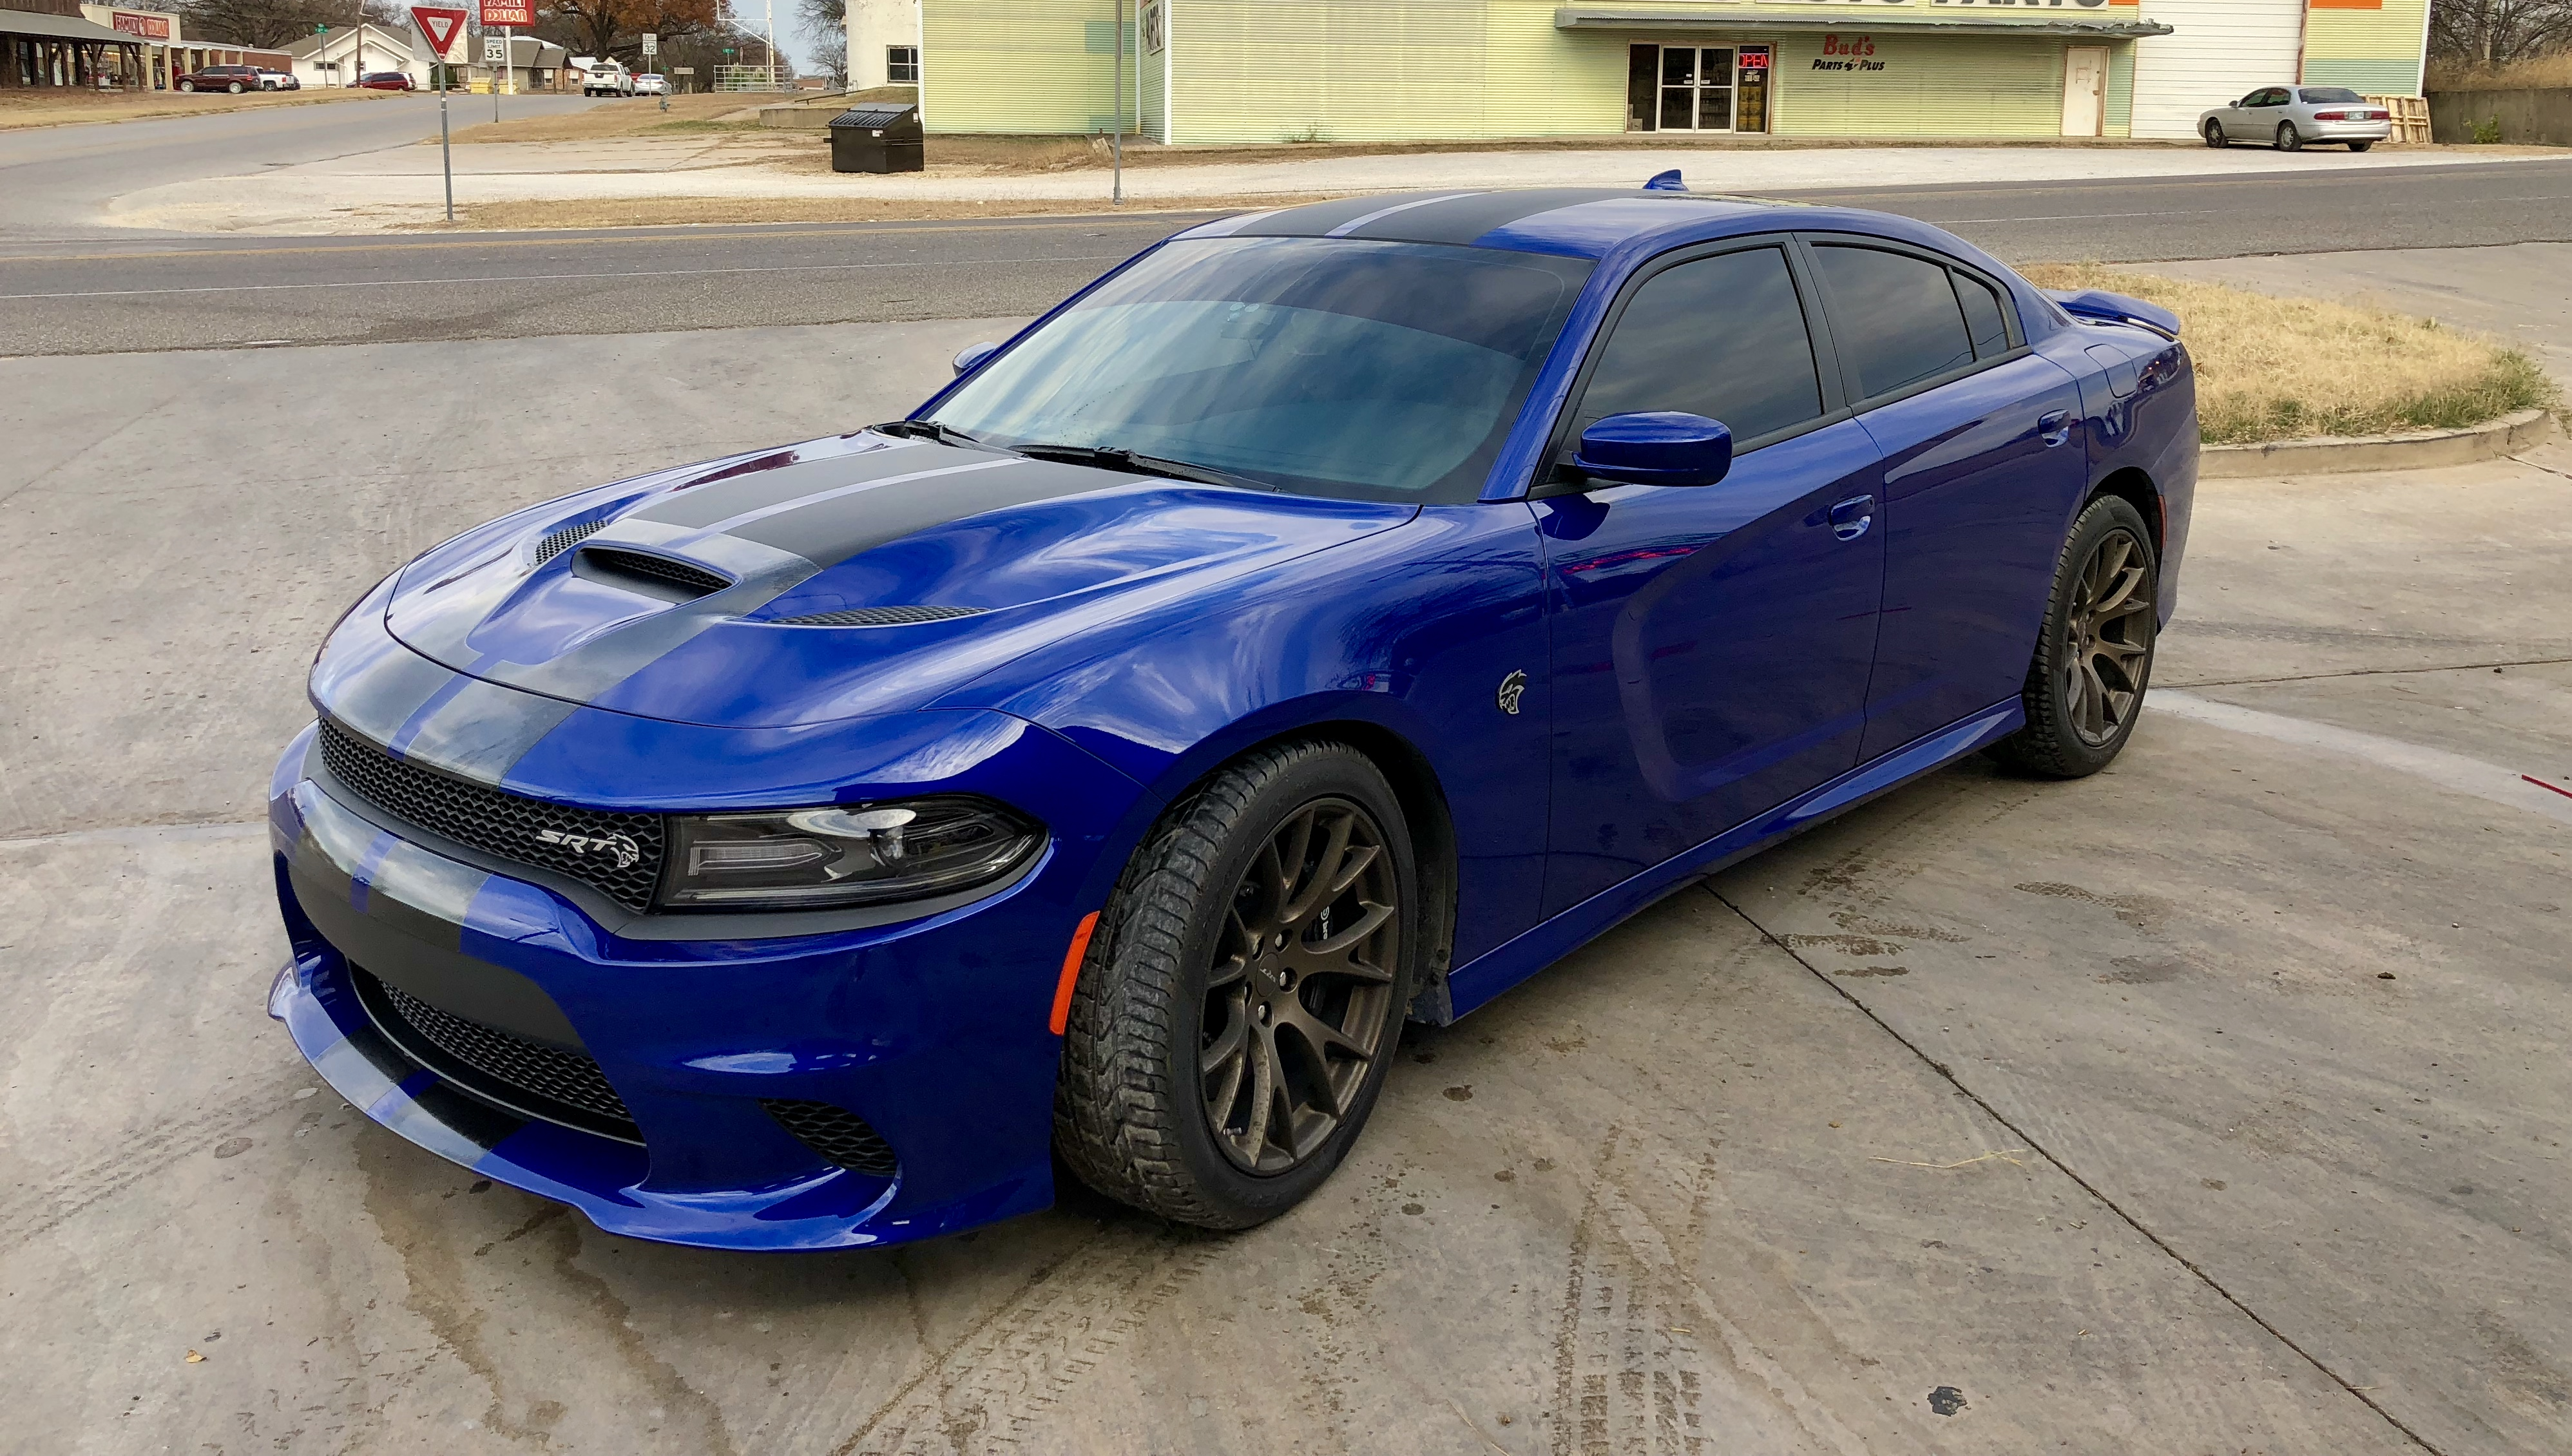 Dodge Challenger Hellcat Blue >> 2015 Hellcat gone and my 2018 is in. | SRT Hellcat Forum